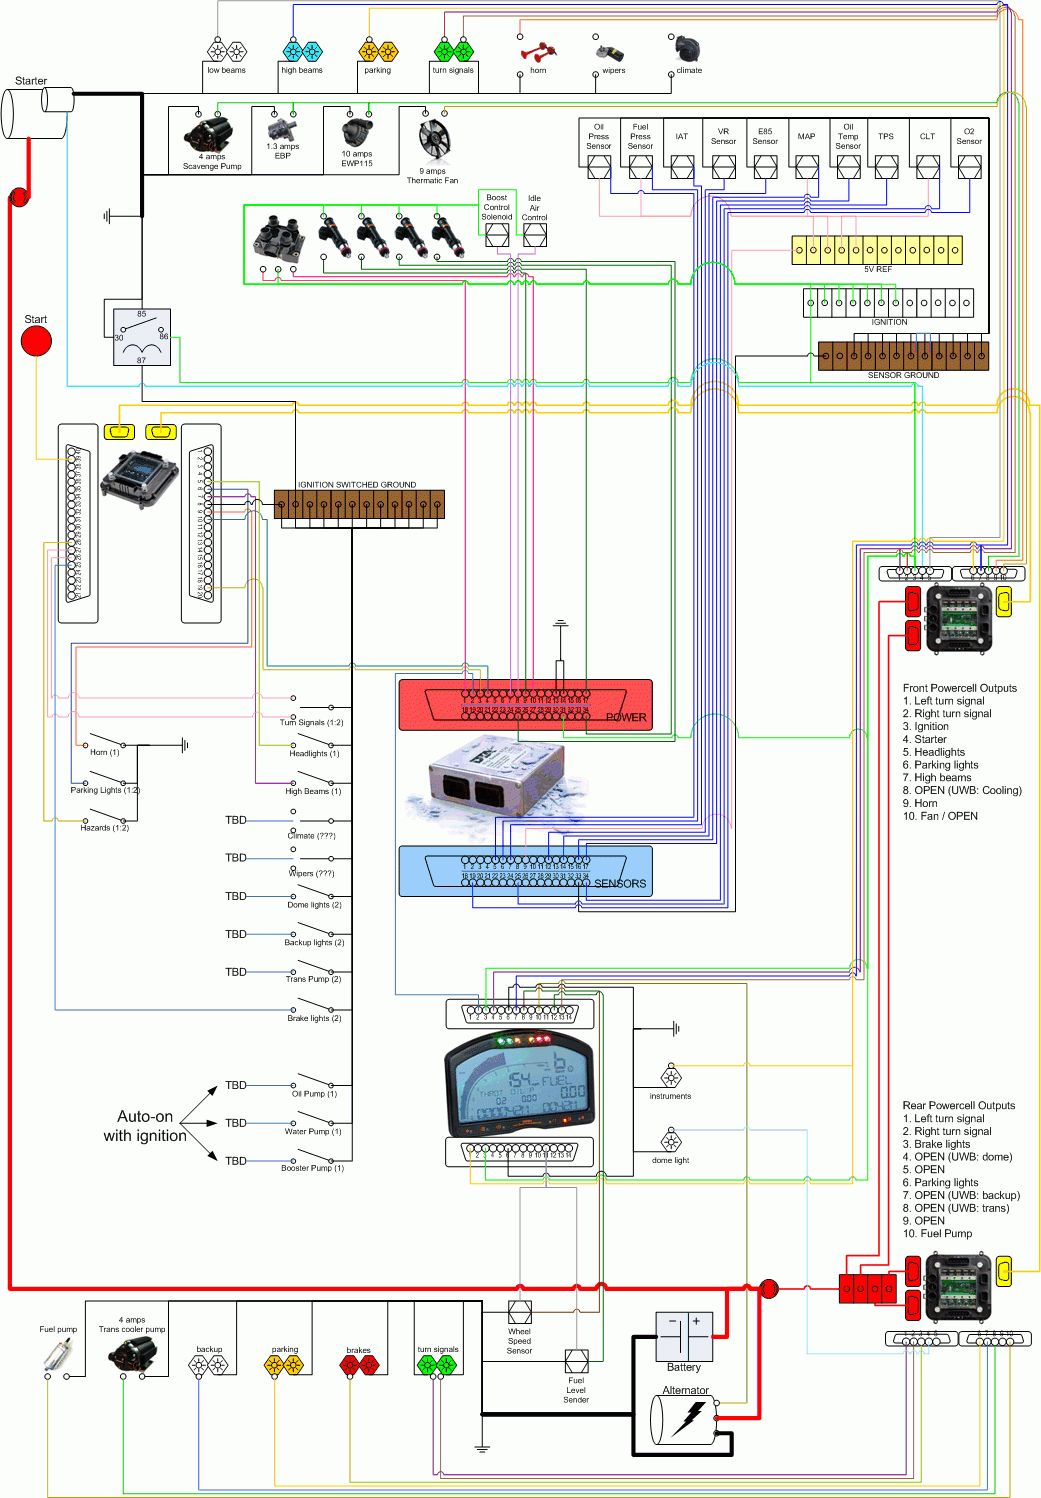 Haneline Gauges Wiring Diagram - Wiring Diagrams Reset on